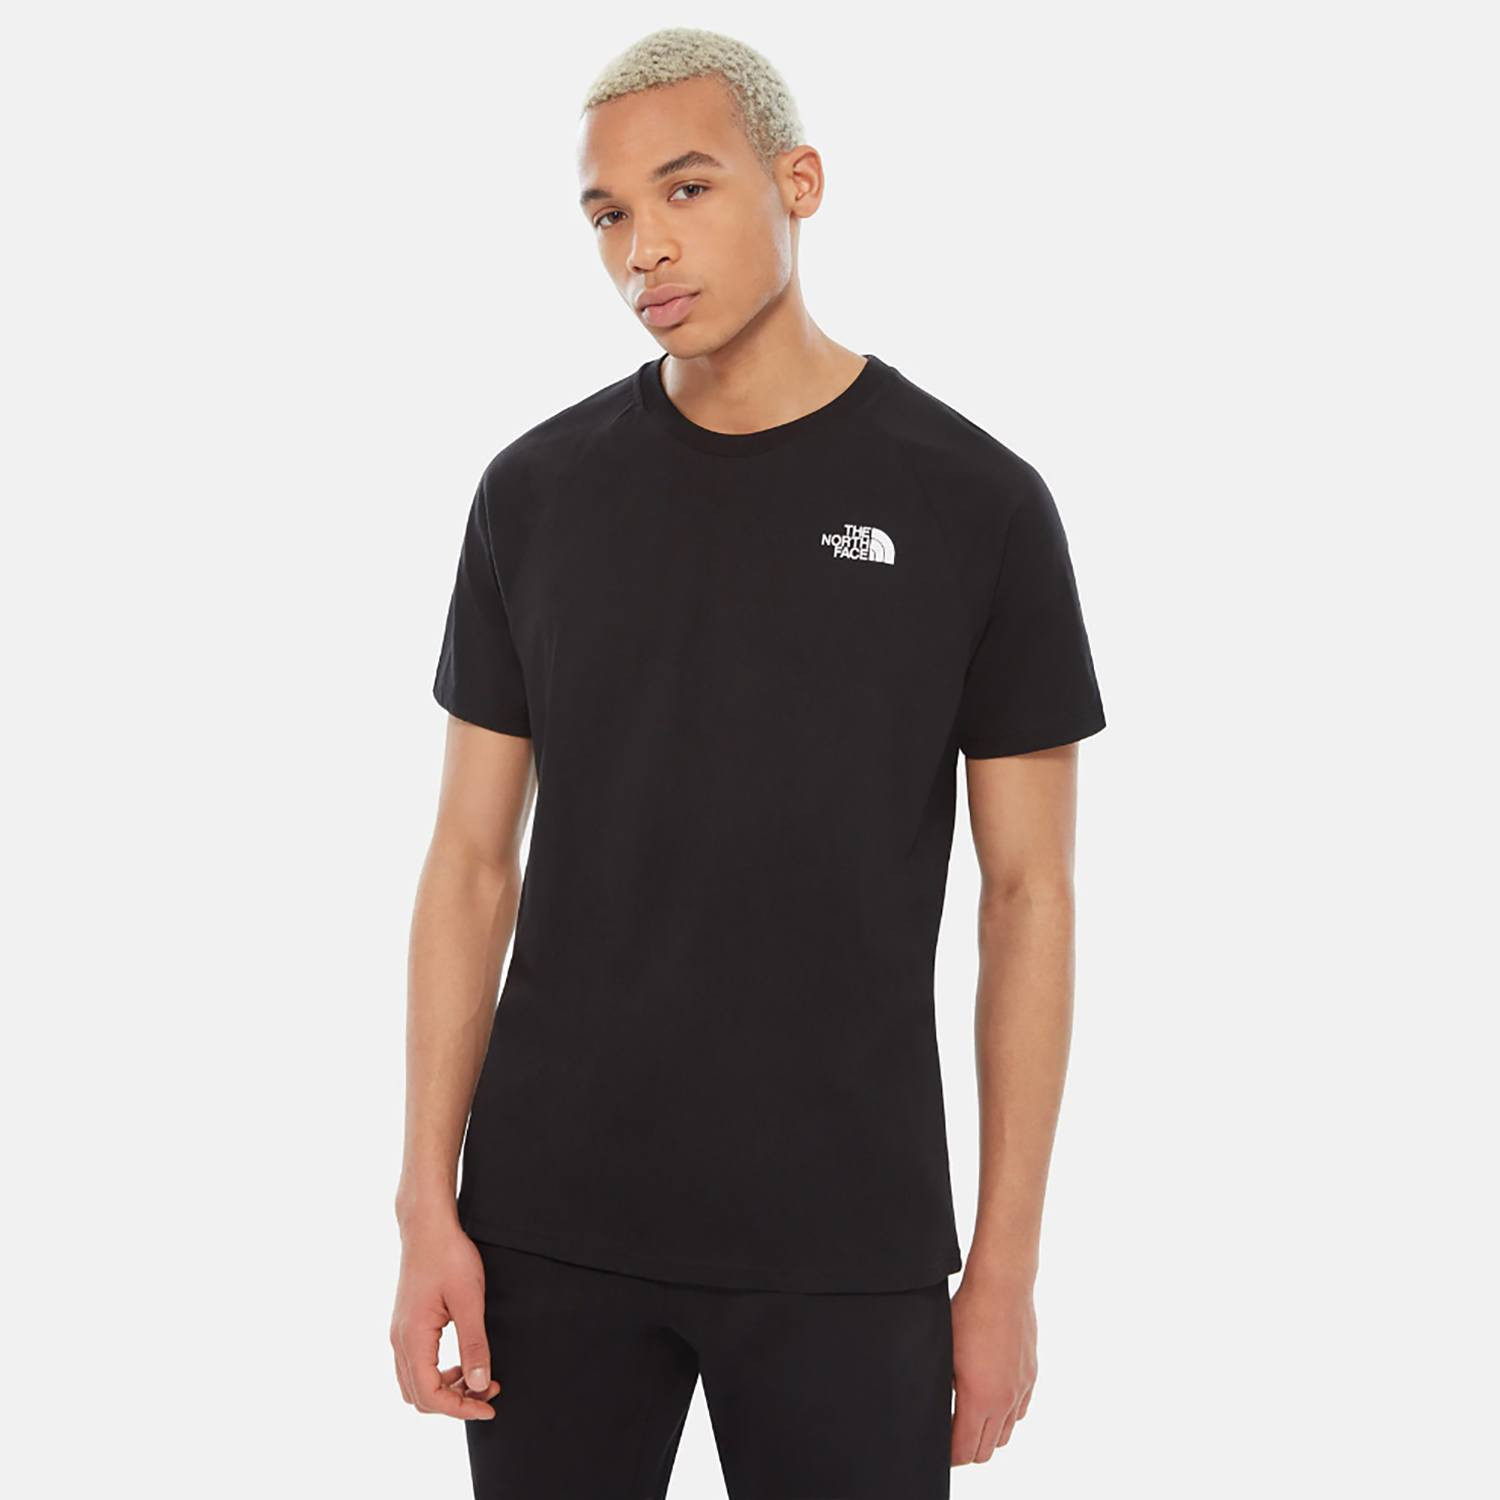 THE NORTH FACE M S/S NORTH FACE TEE (9000036527_23281)